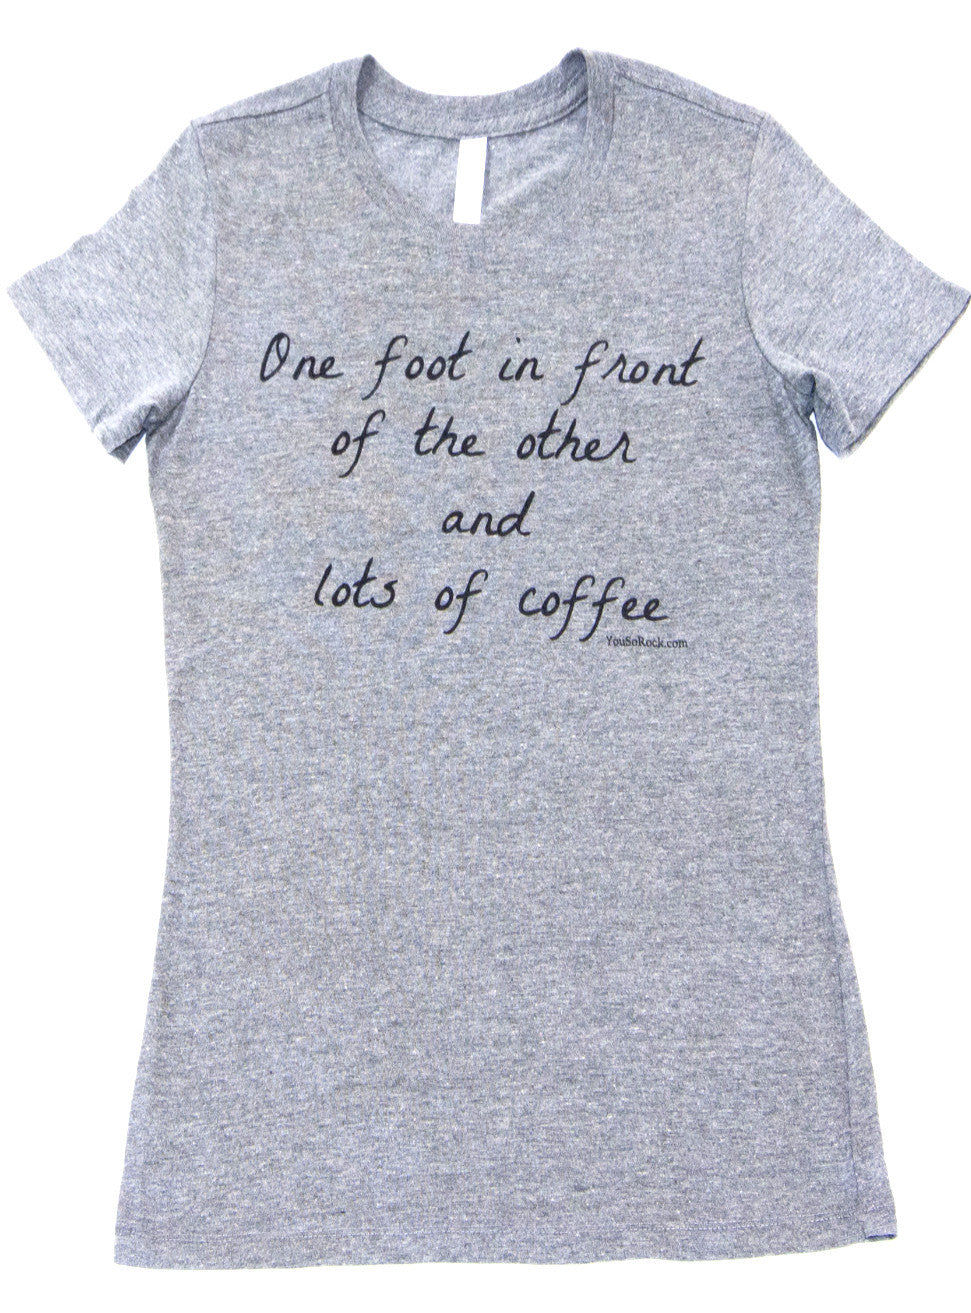 One Foot and Lots of Coffee tee